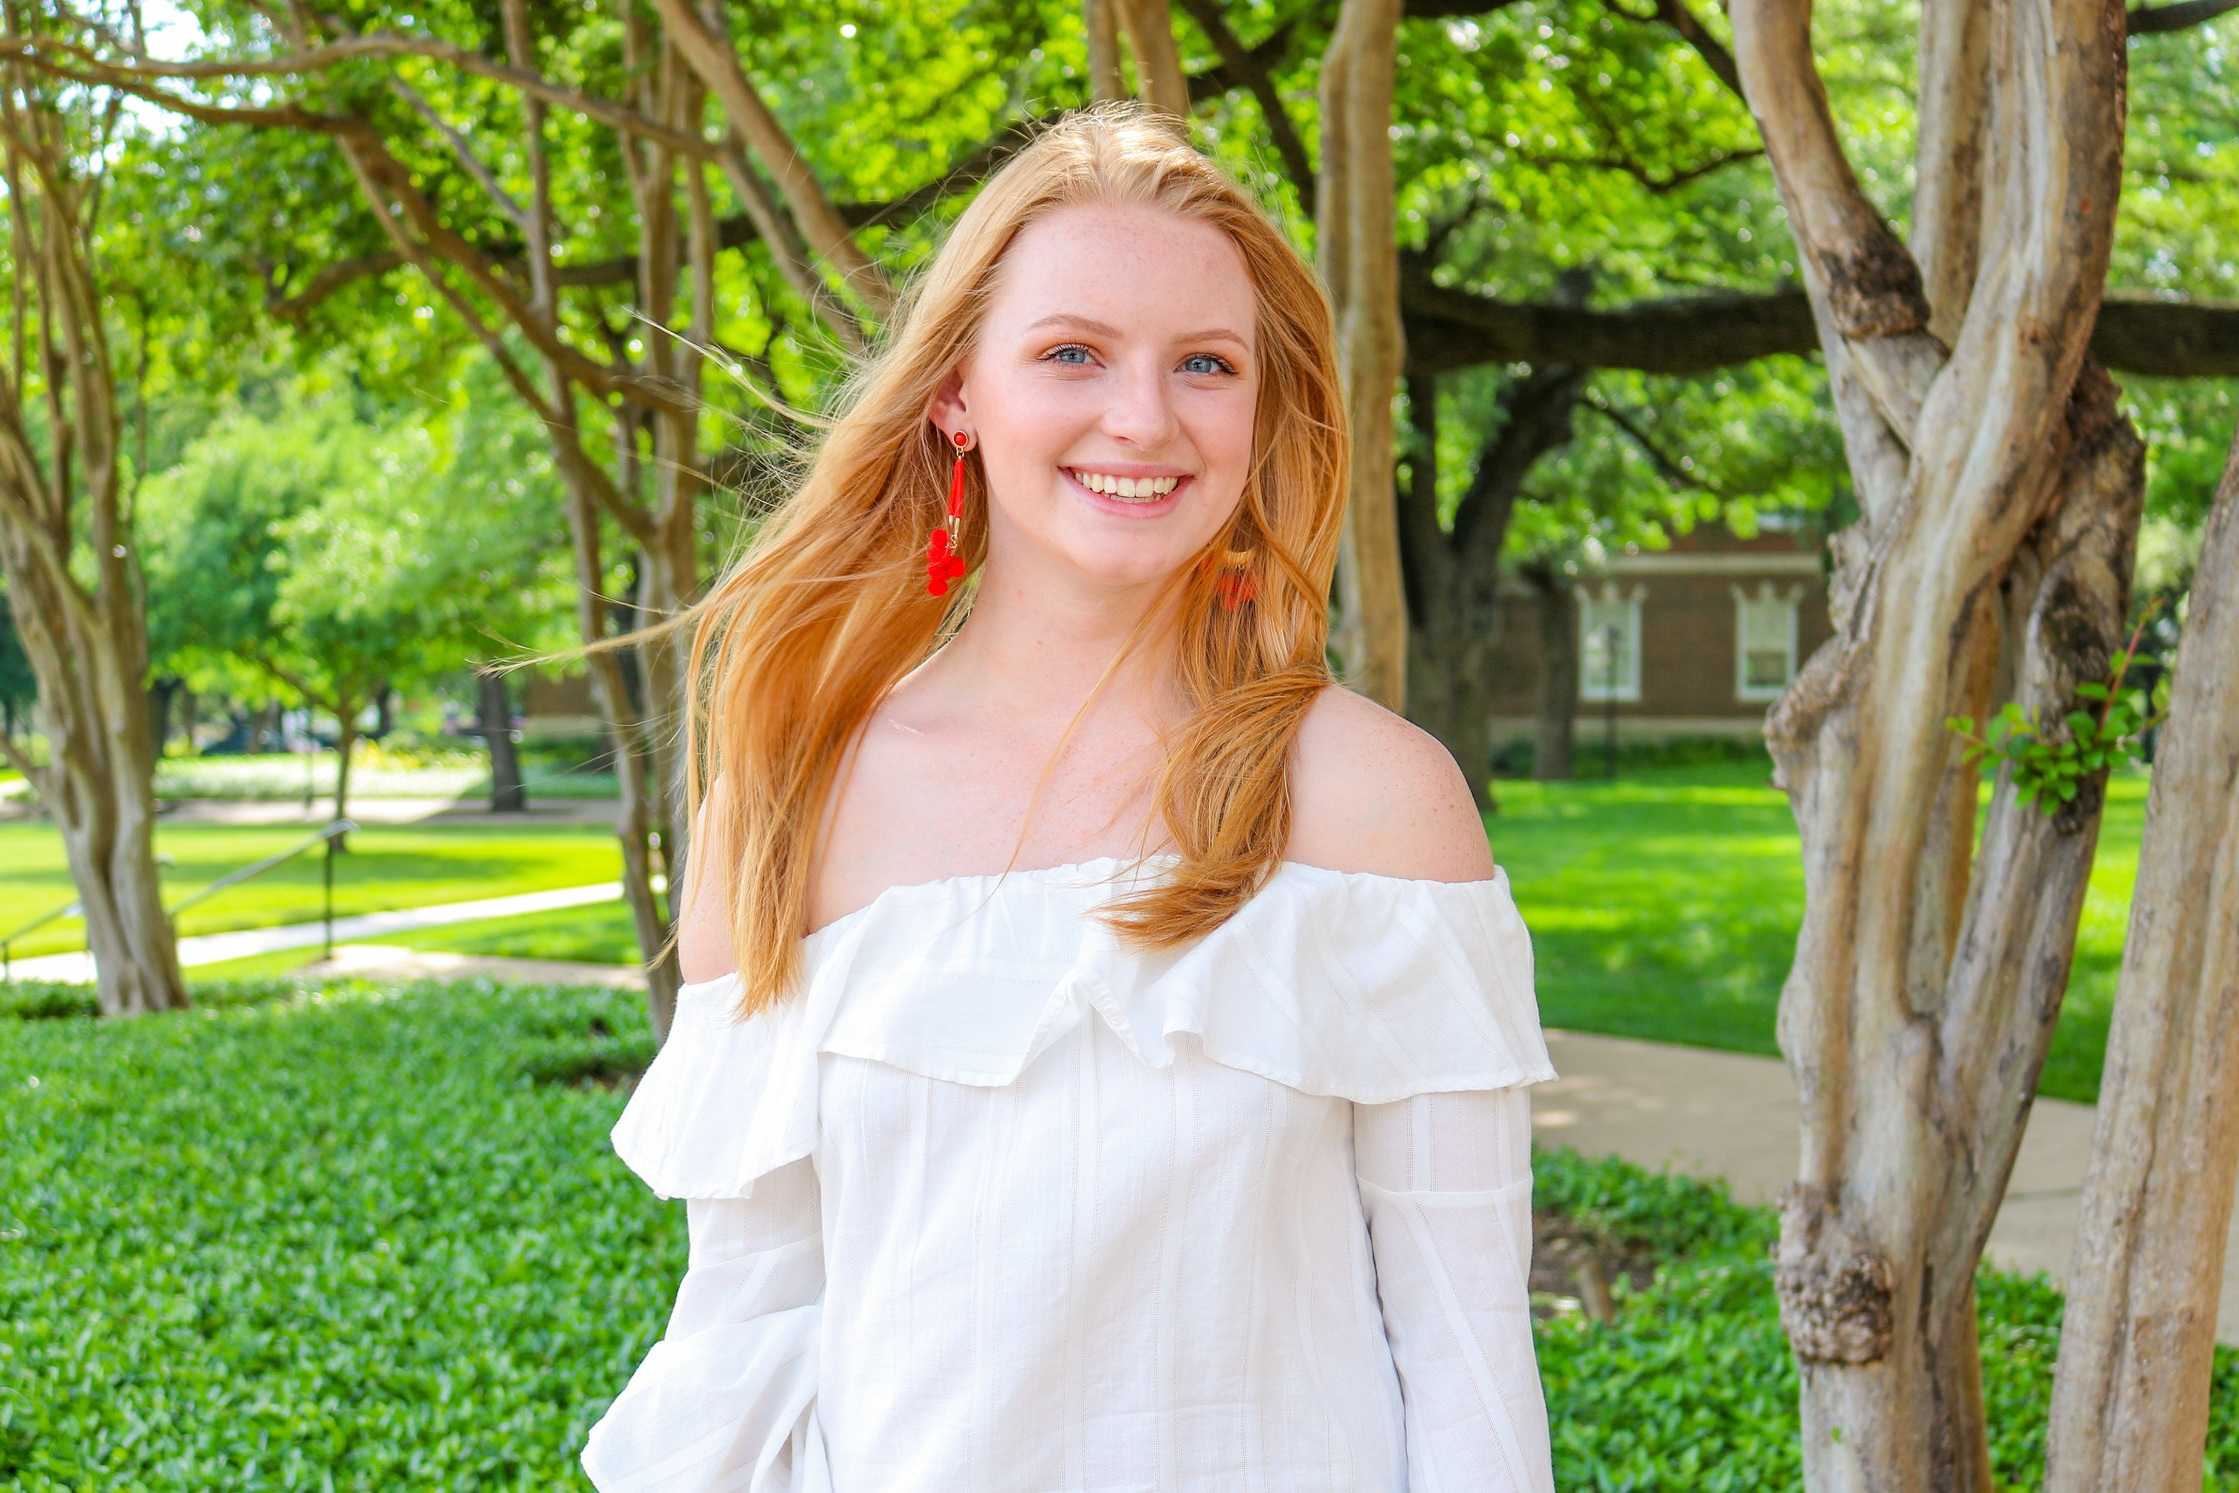 Kealey is a sophomore from Melissa, Texas who is studying Vocal Performance and Music Education with minors in Musical Theatre and Spanish. She loves music, connecting to people, and ice cream. One day Kealey dreams of being a famous musician and represented Boaz last year with an amazing performance in the Commons Cup Talent Show. Her favorite memory in Boaz was playing Ping Pong on the third floor throughout all hours of the night. When she's not cheering on the Boaz Bees Intramural teams or playing ping pong, Kealey can be found near third floor west!